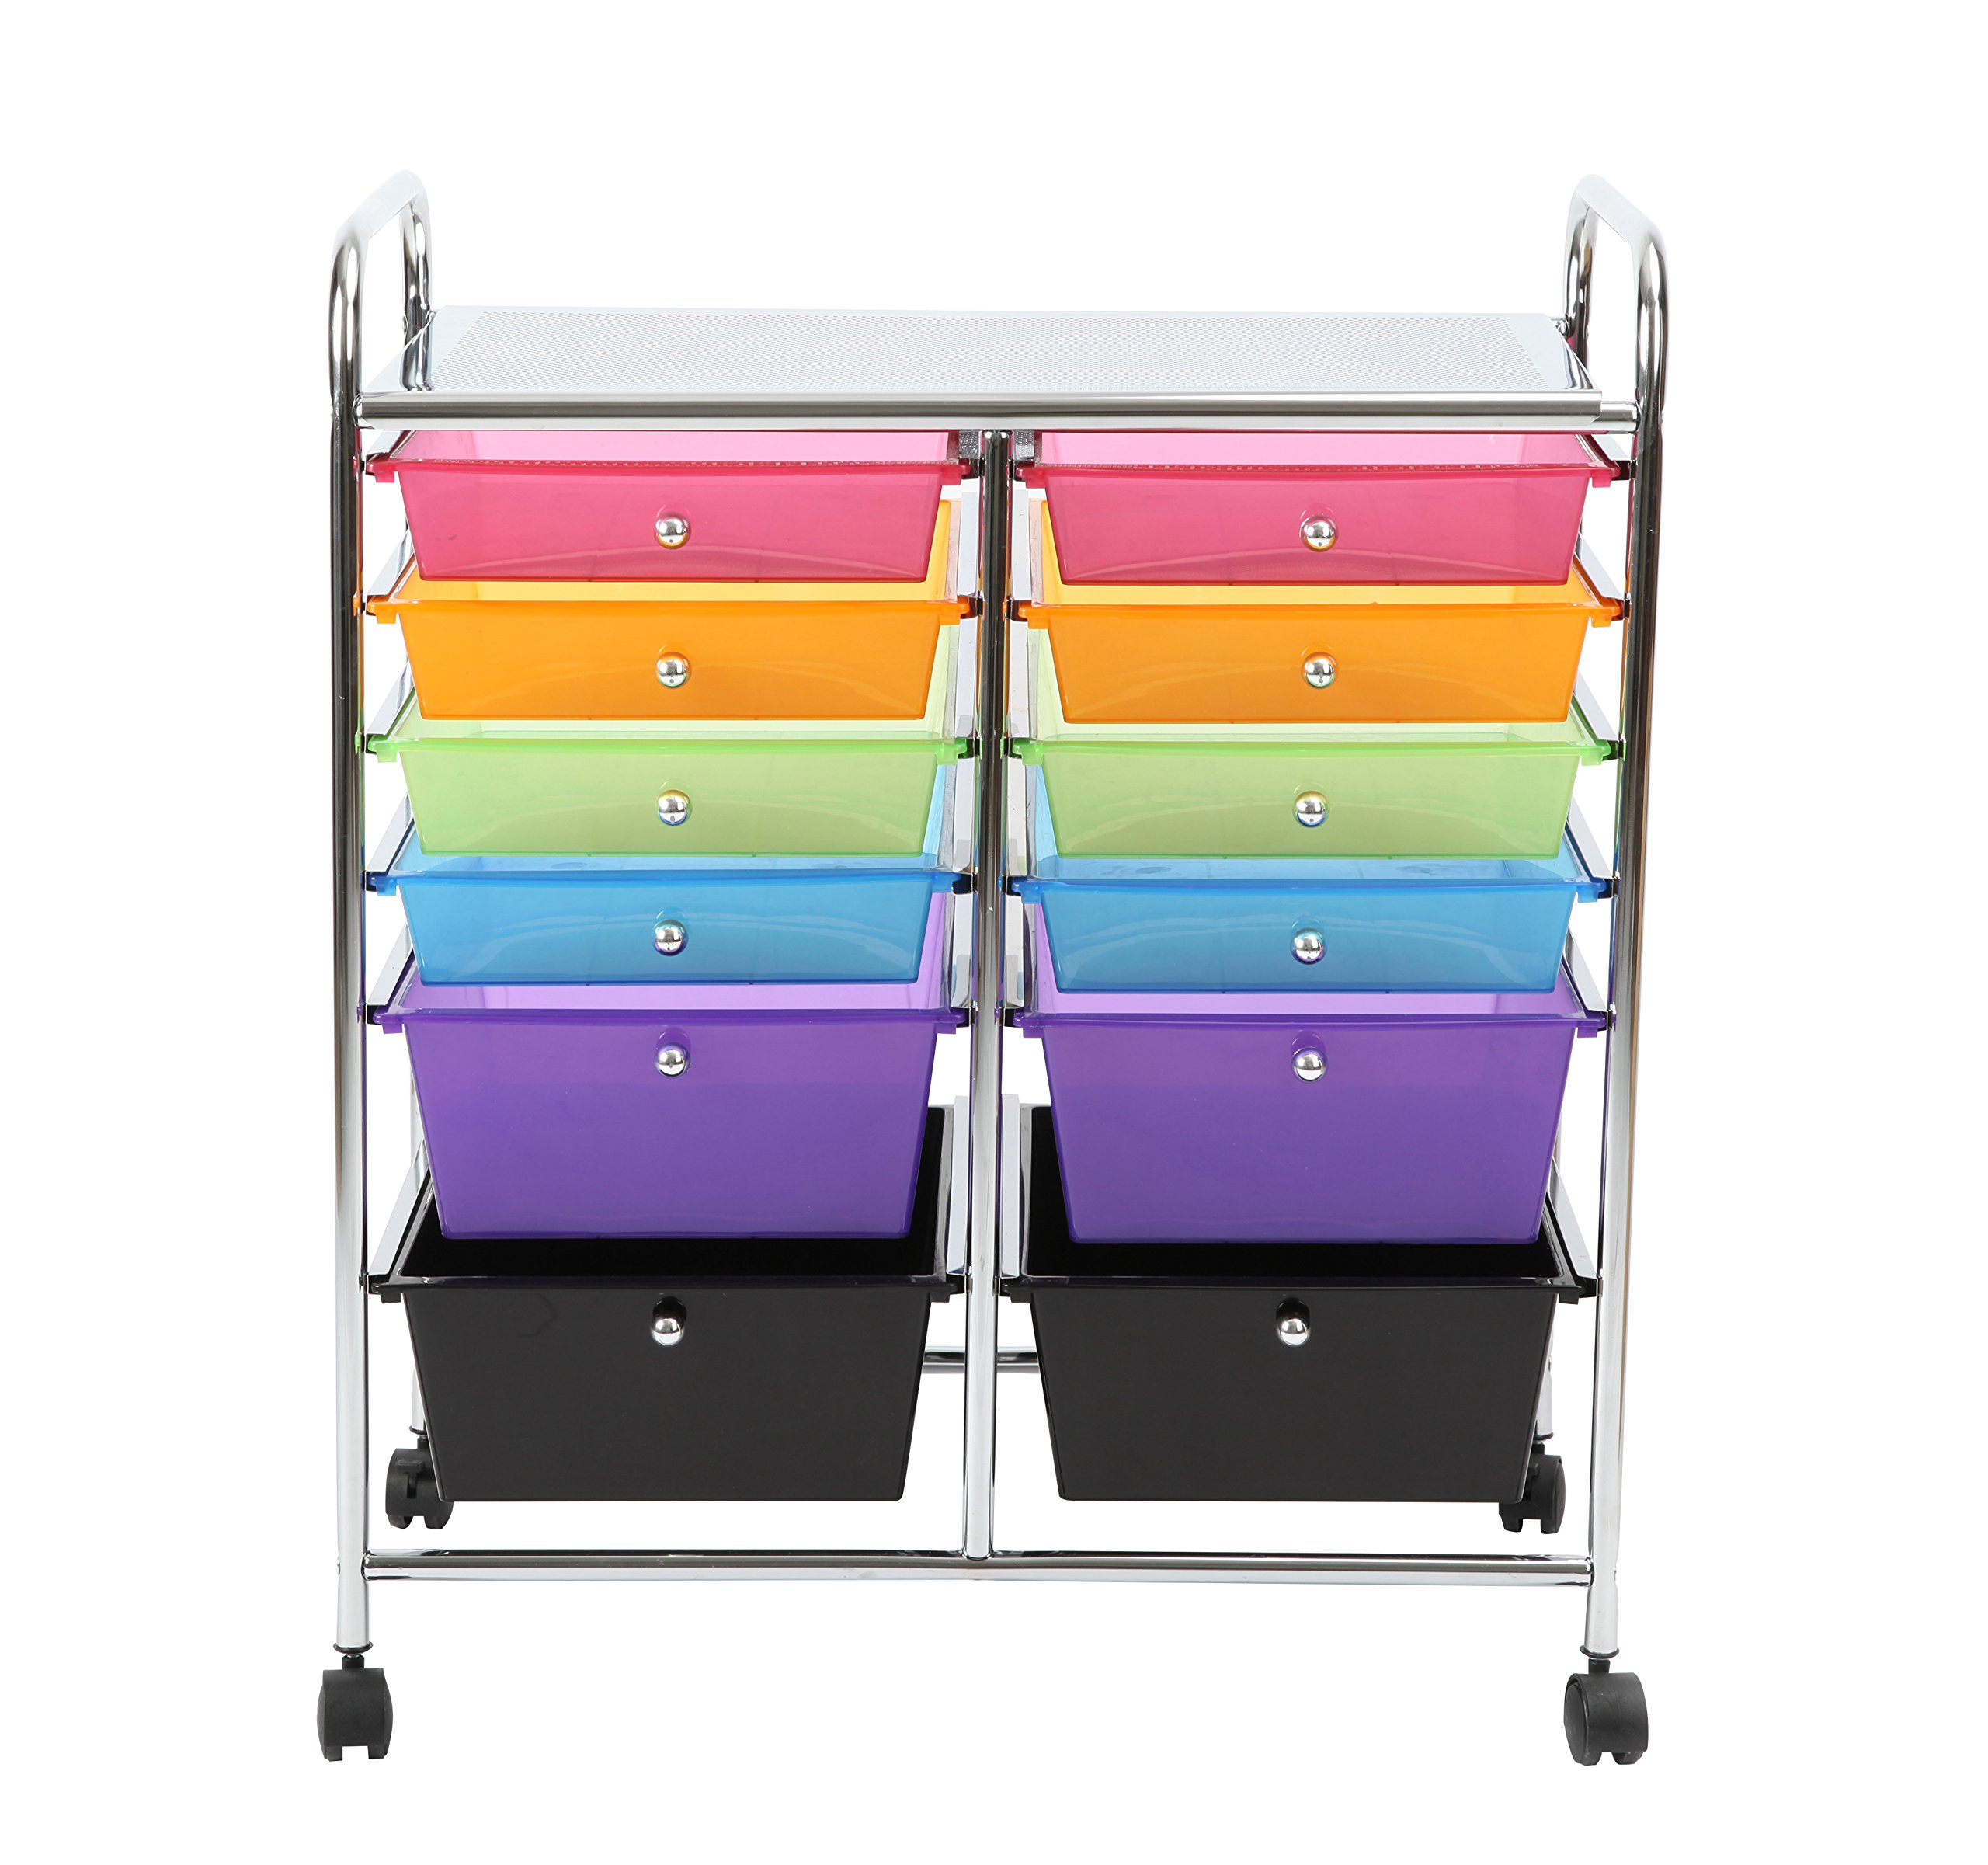 Finnhomy 12-Drawer Plastic Portable Mobile Organizer Rainbow, Multi-Purpose Utility Double Rolling Storage Cart, Bright Chrome Metal Frame and Multi Color Drawer Studio Trolley